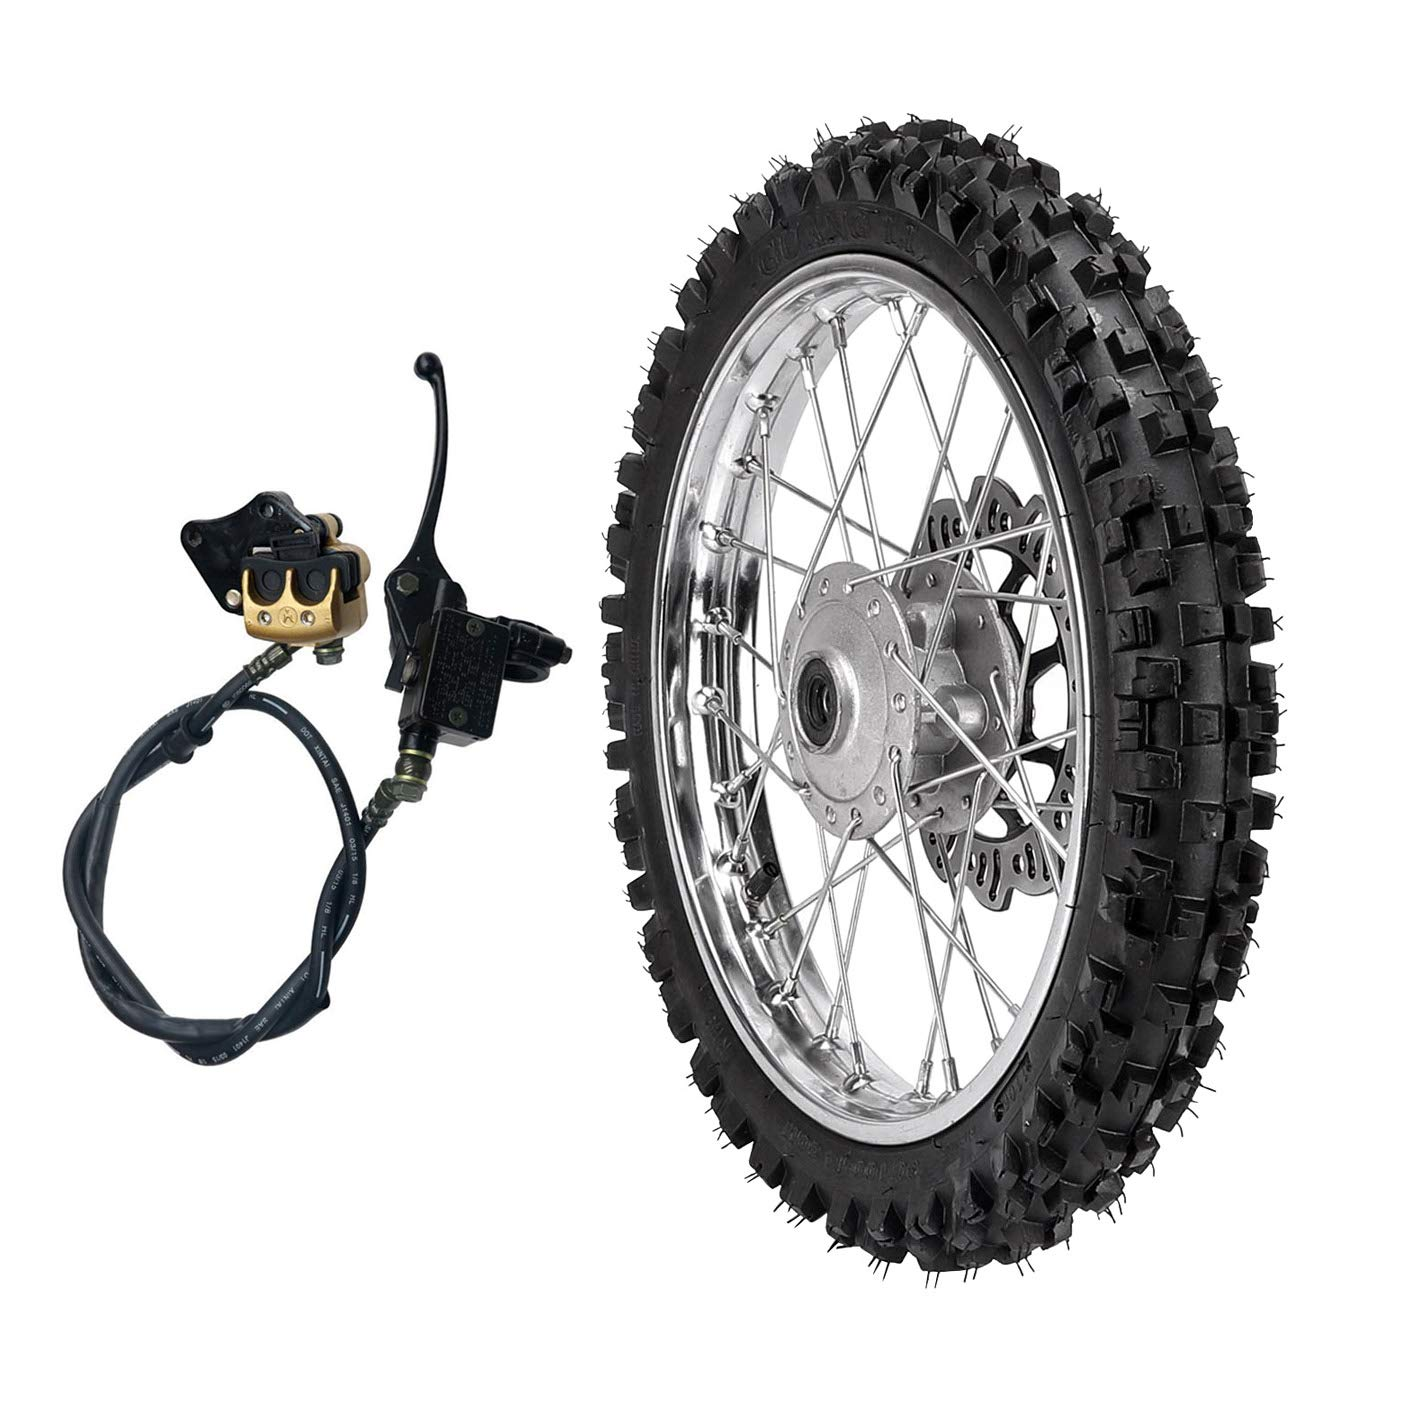 ZXTDR 2.50-14 1.4x14 inch Wheel With 12mm Bearing Axle 60//100-14 Tire Rim and Disc Roto Assembly /& Front Hydraulic Brake for Dirt Pit Bike